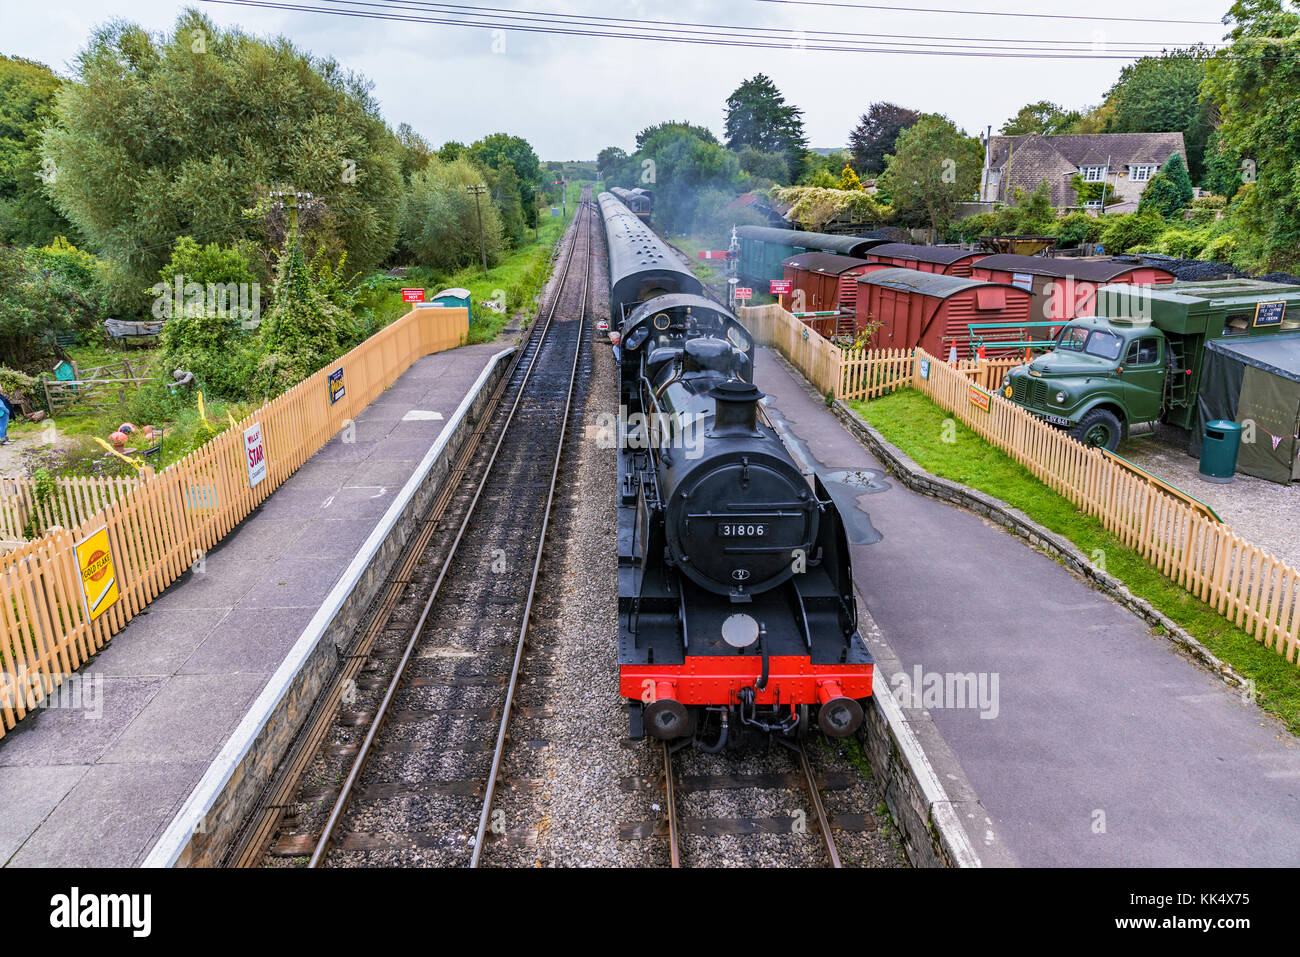 CORFE, UNITED KINGDOM - SEPTEMBER 08: This is an old British steam train passing through the medieval village of - Stock Image